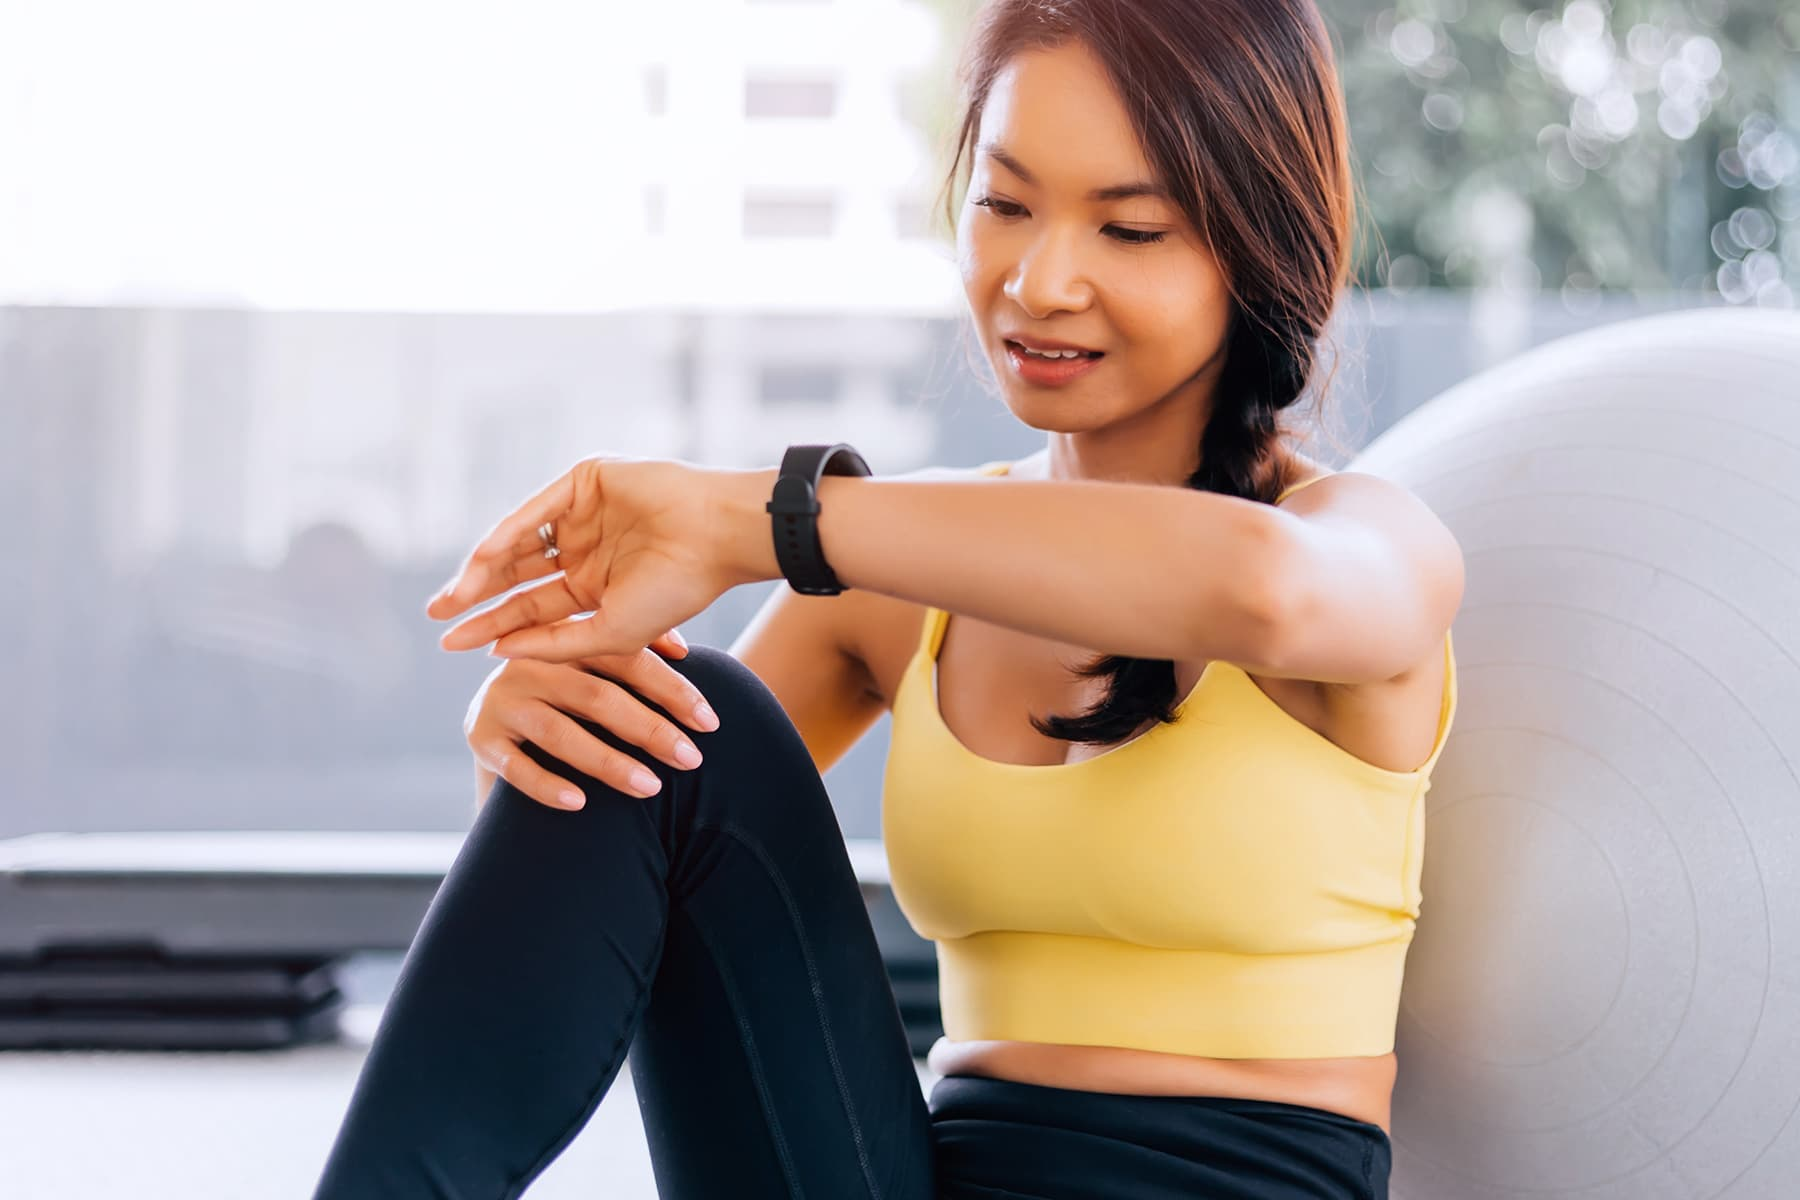 photo of woman in sports bra checking smartwatch